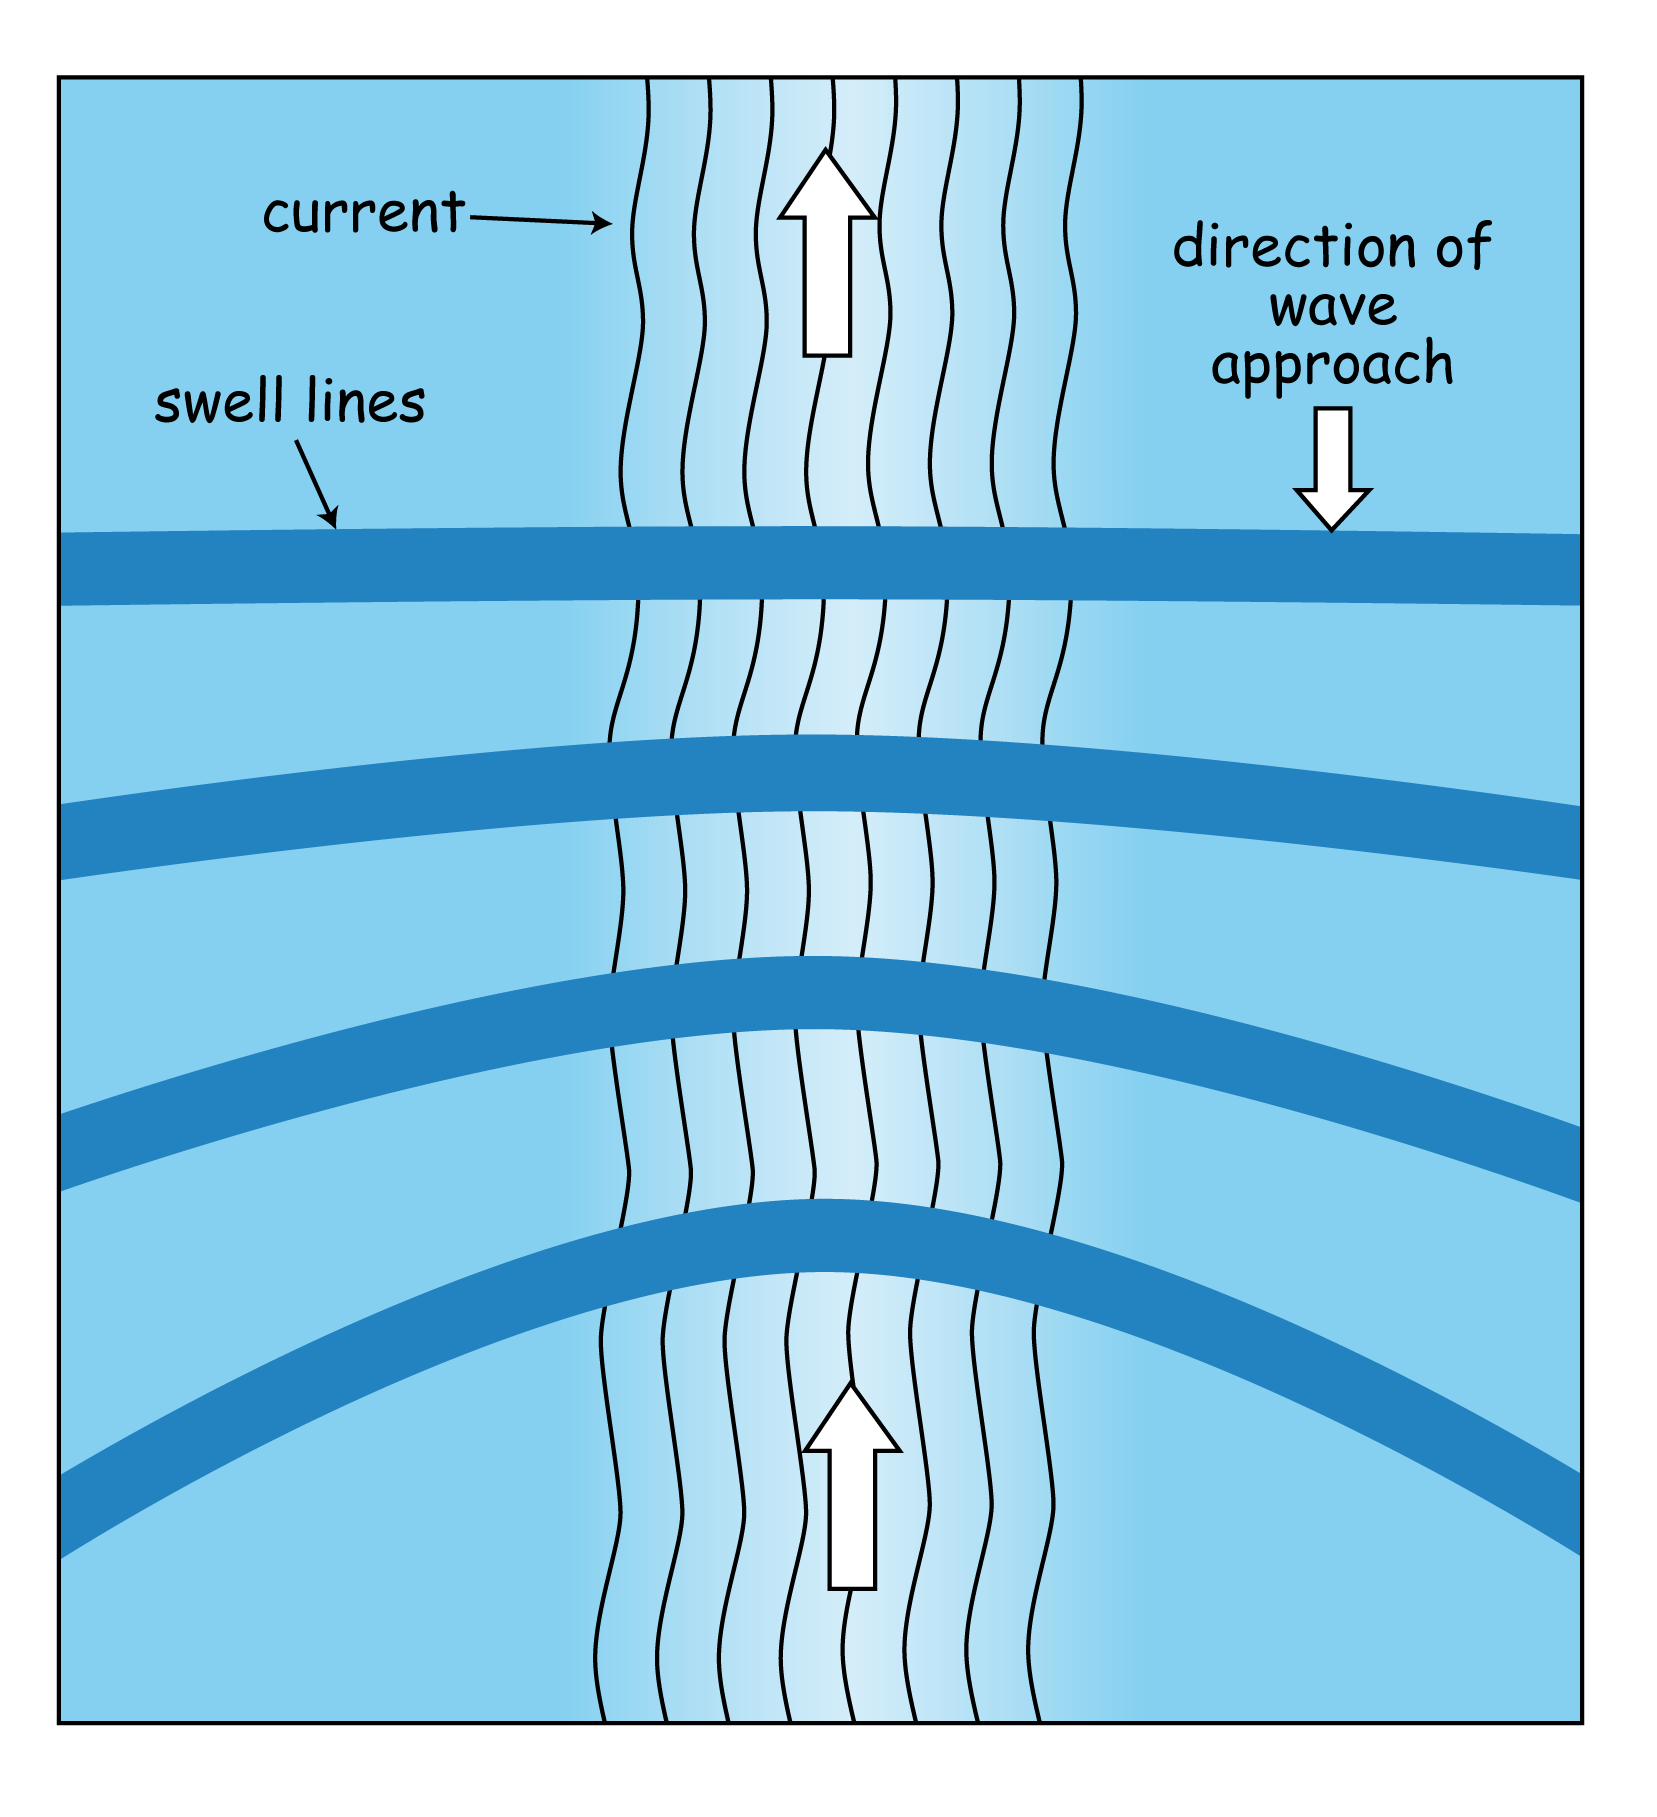 Wave-current interaction: the current makes the waves focus into the middle, plus it also pushes them closer together, both of which increase the wave height.